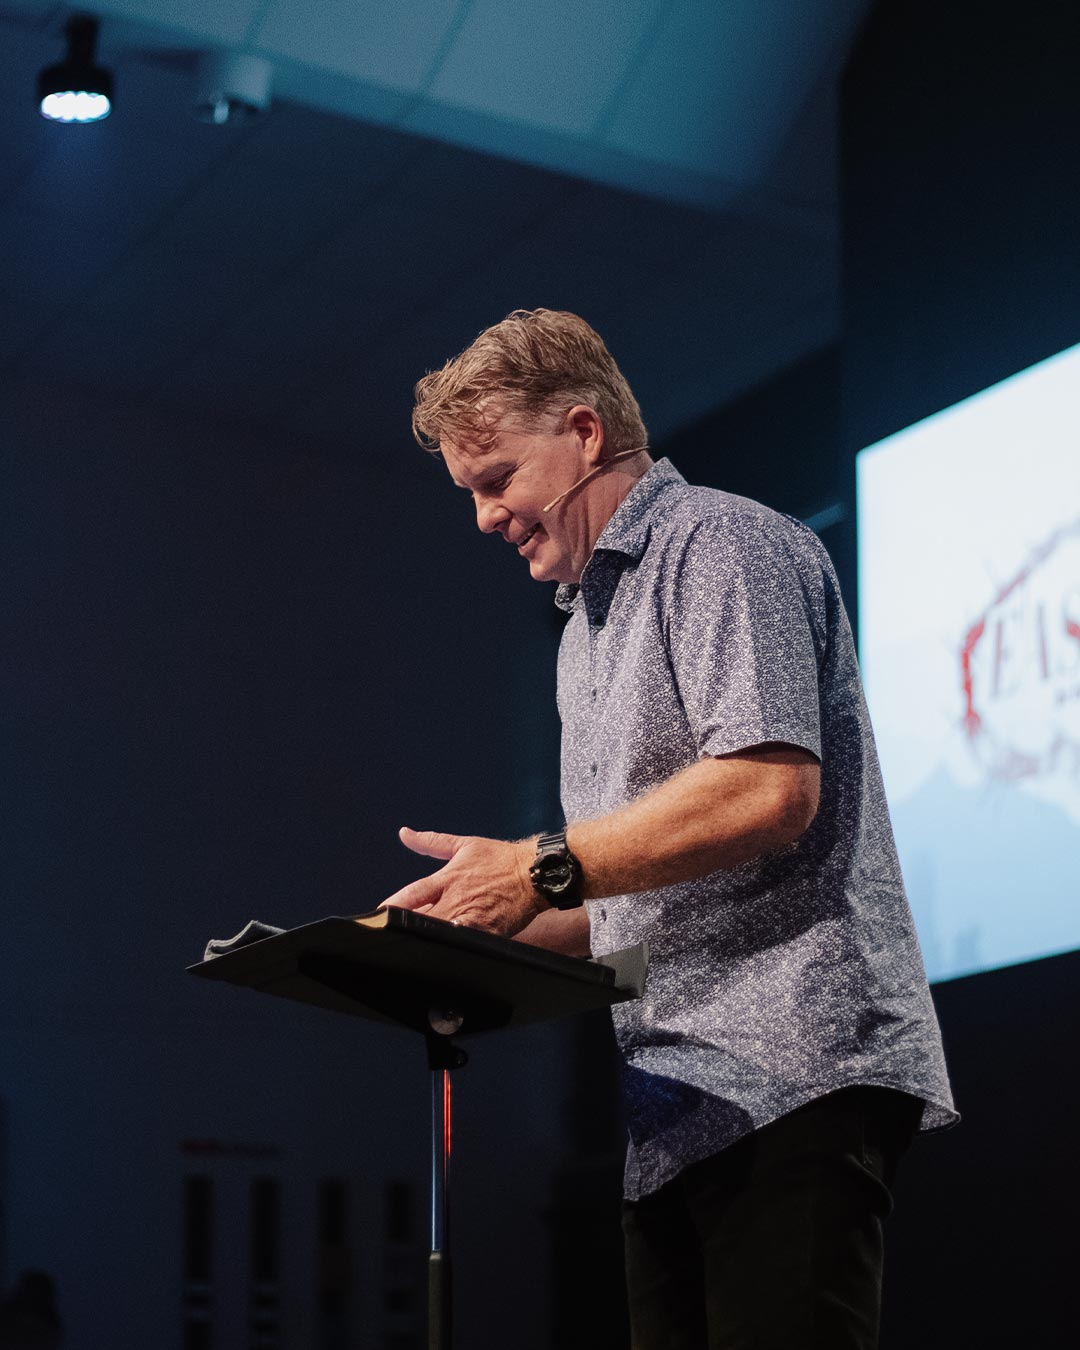 pastor preaching of masters degree in divinity online